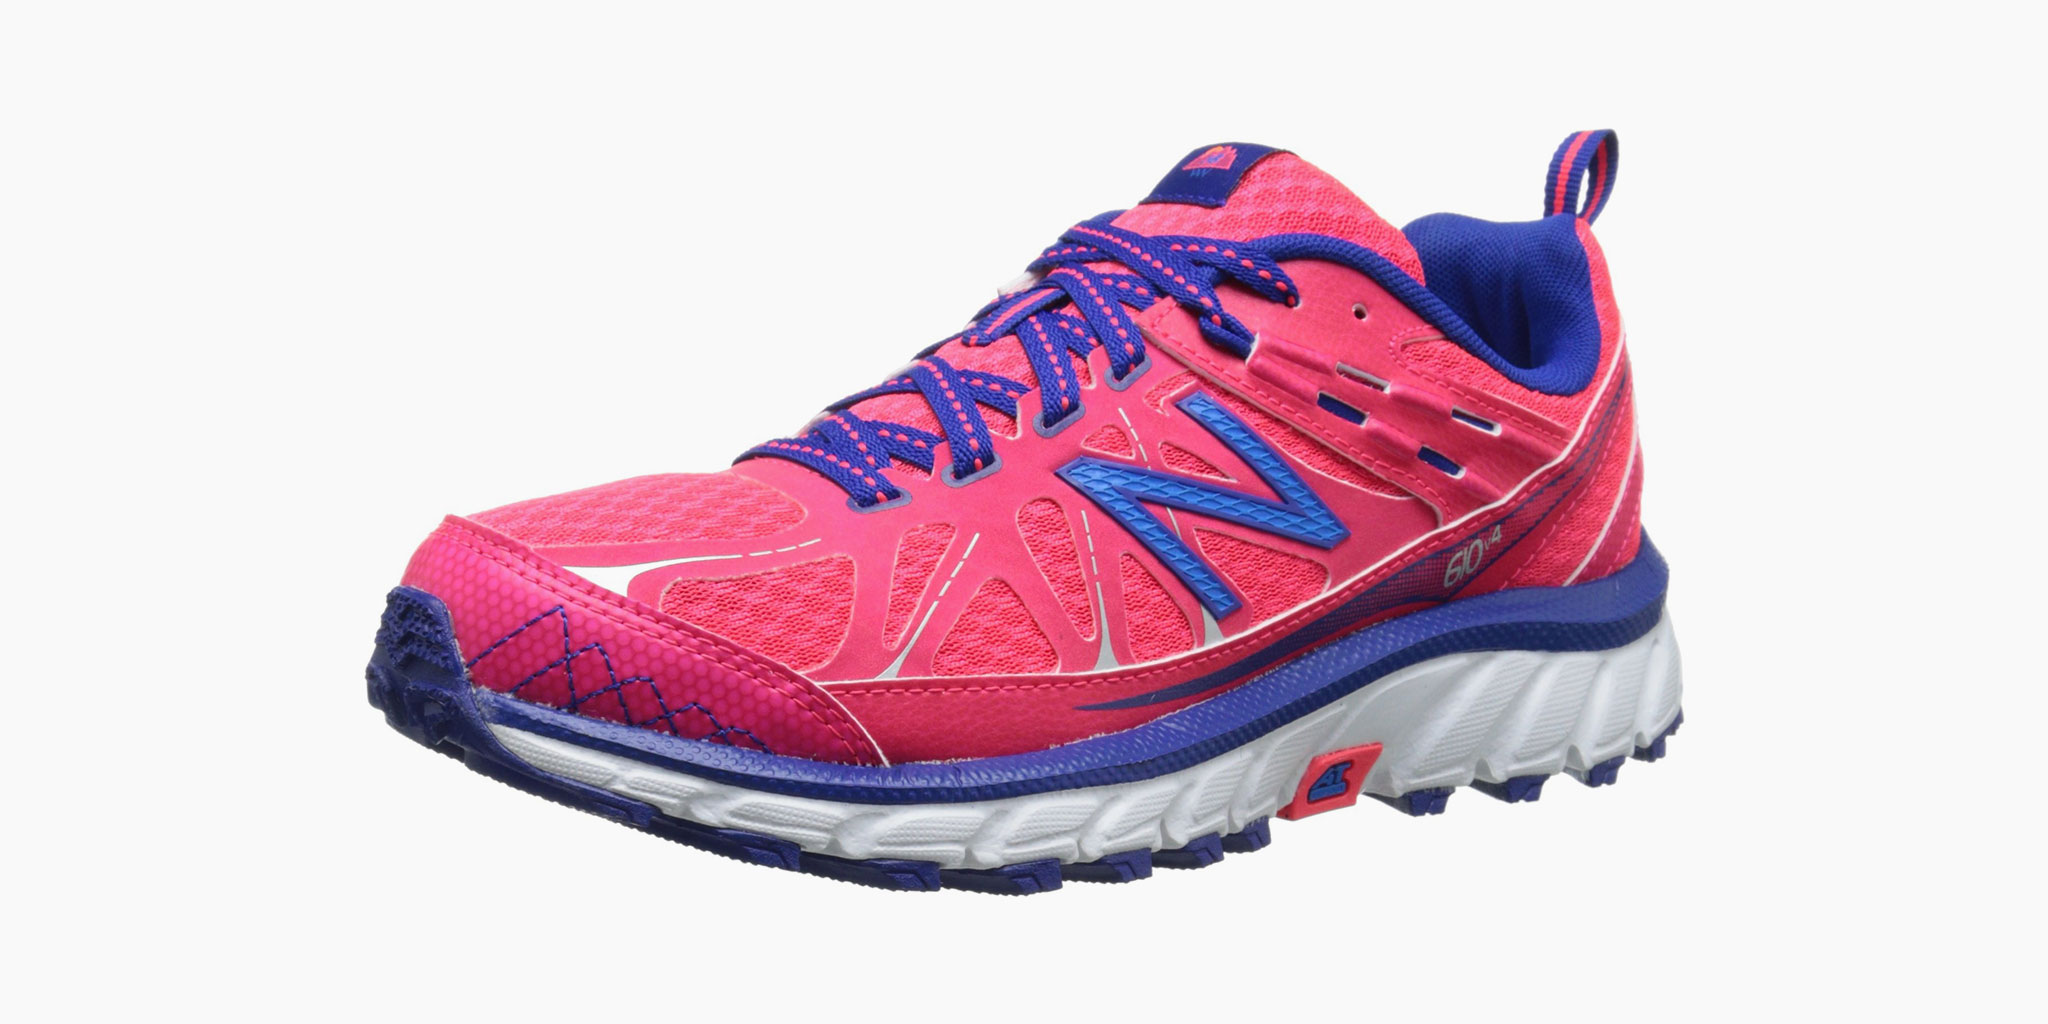 Best Minimalist Running Shoes For Flat Feet